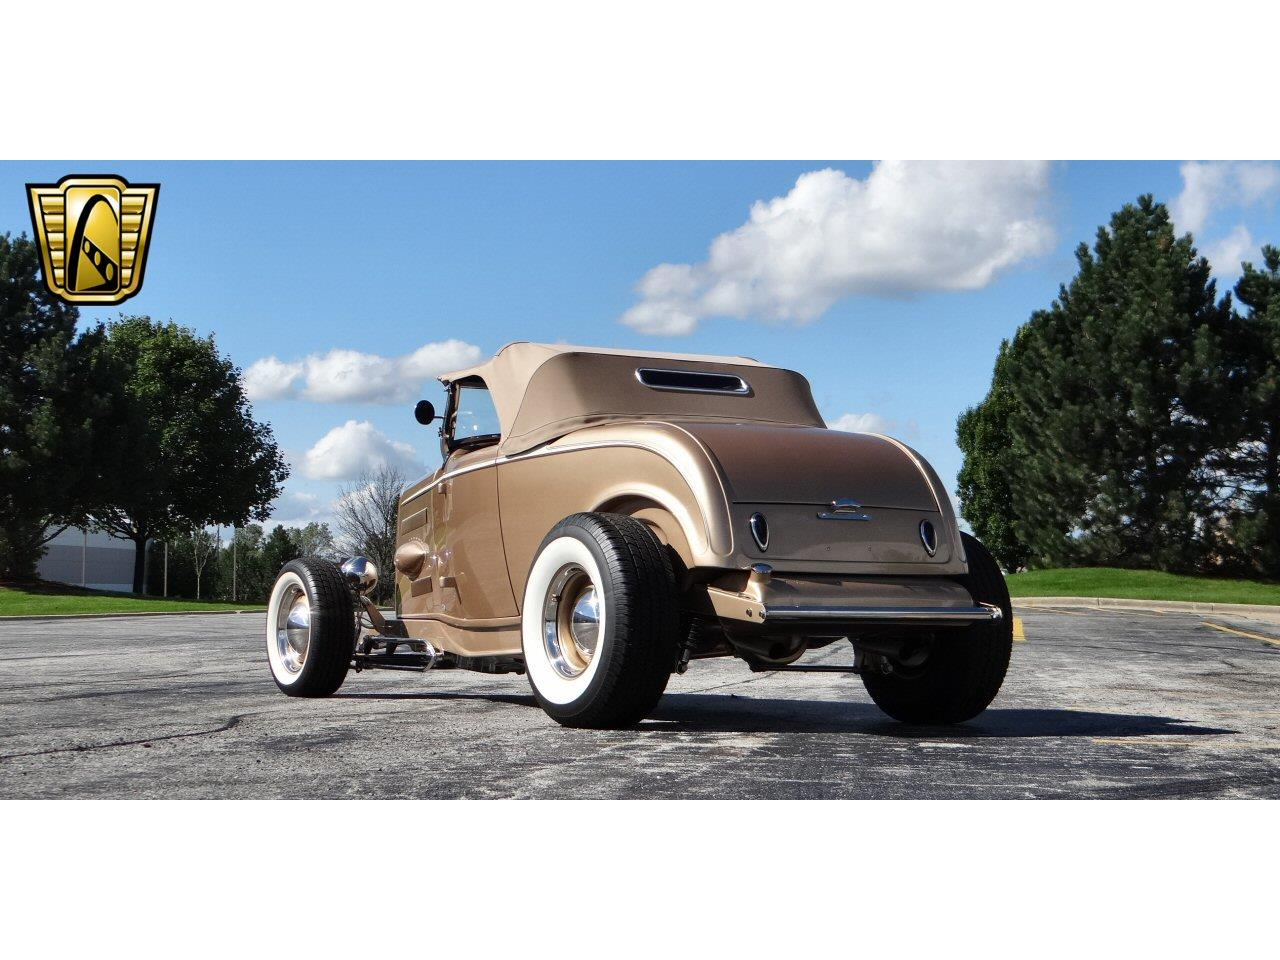 Large Picture of Classic '32 Ford Highboy located in Illinois - $54,000.00 Offered by Gateway Classic Cars - Chicago - KEZ8